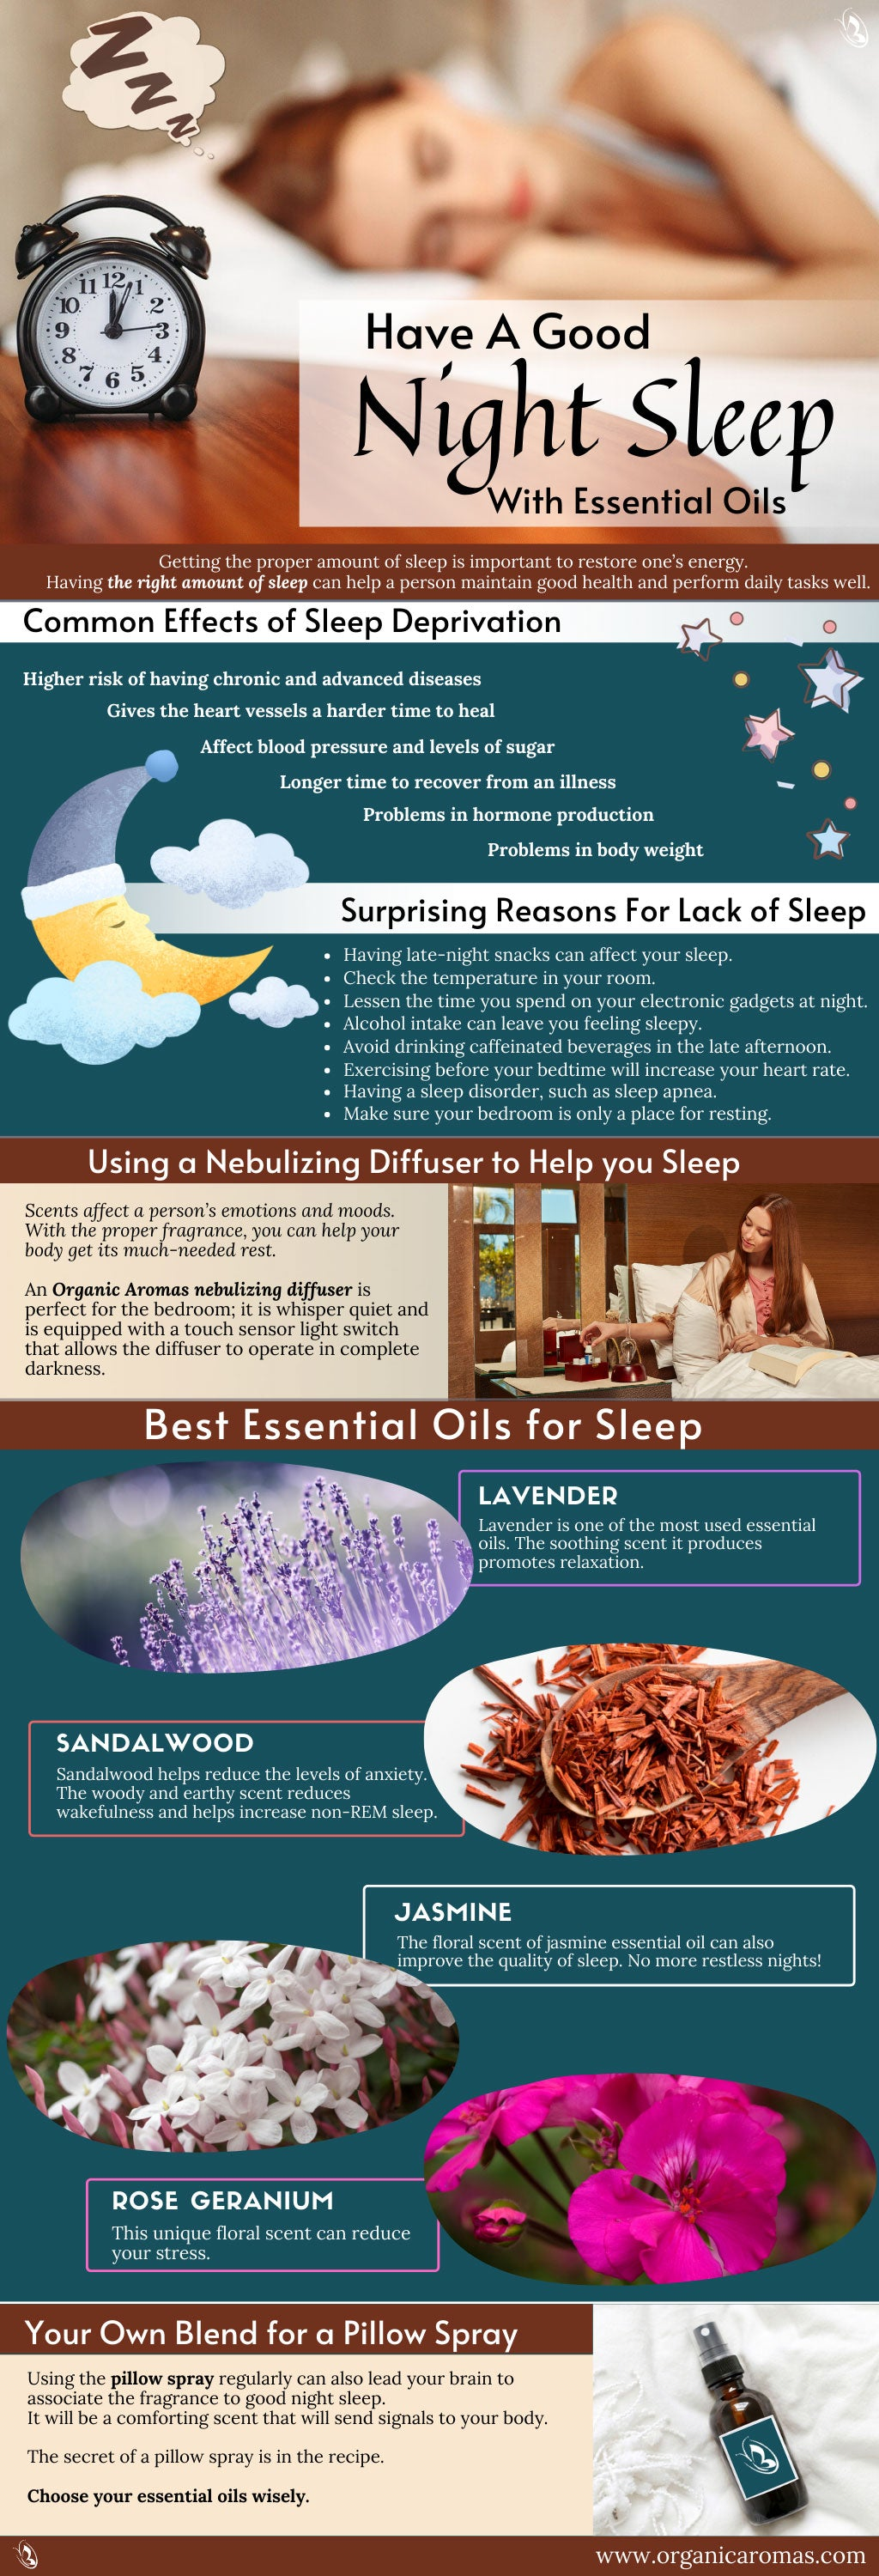 Have A Good Night Sleep With Essential Oils